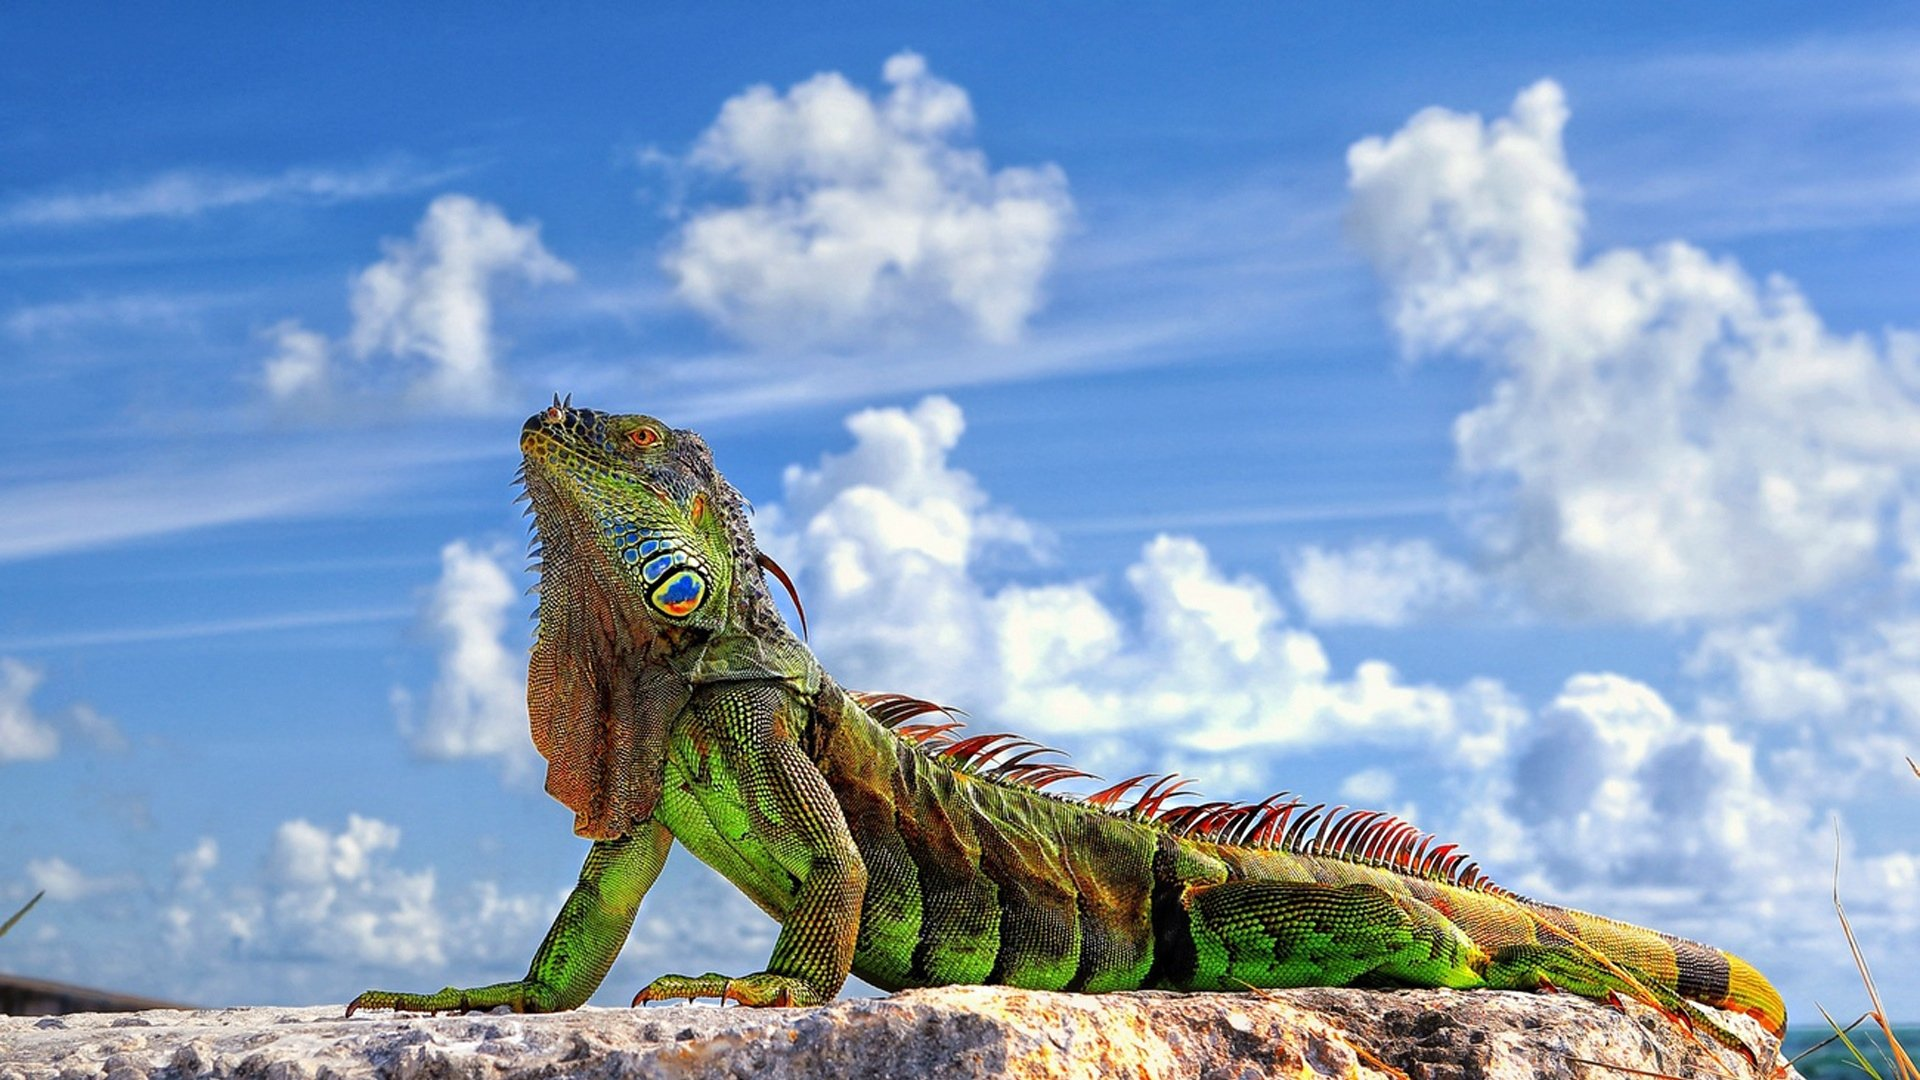 Iguana Wallpapers and Background Images   stmednet 1920x1080